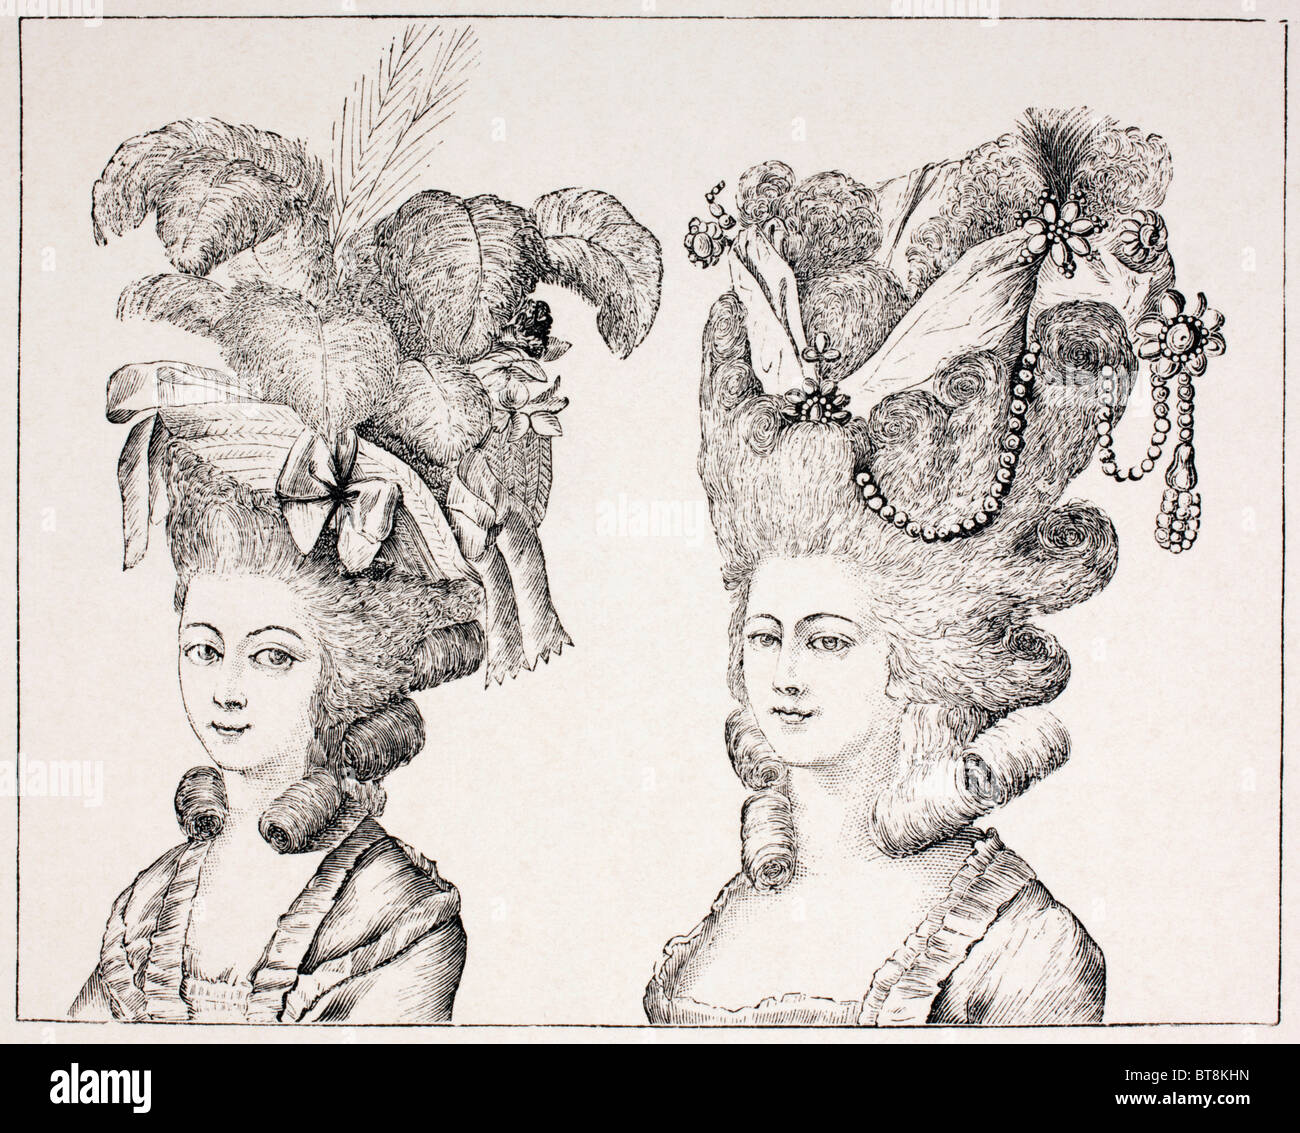 18th century French girls wearing extravagant hair styles and hats. - Stock Image